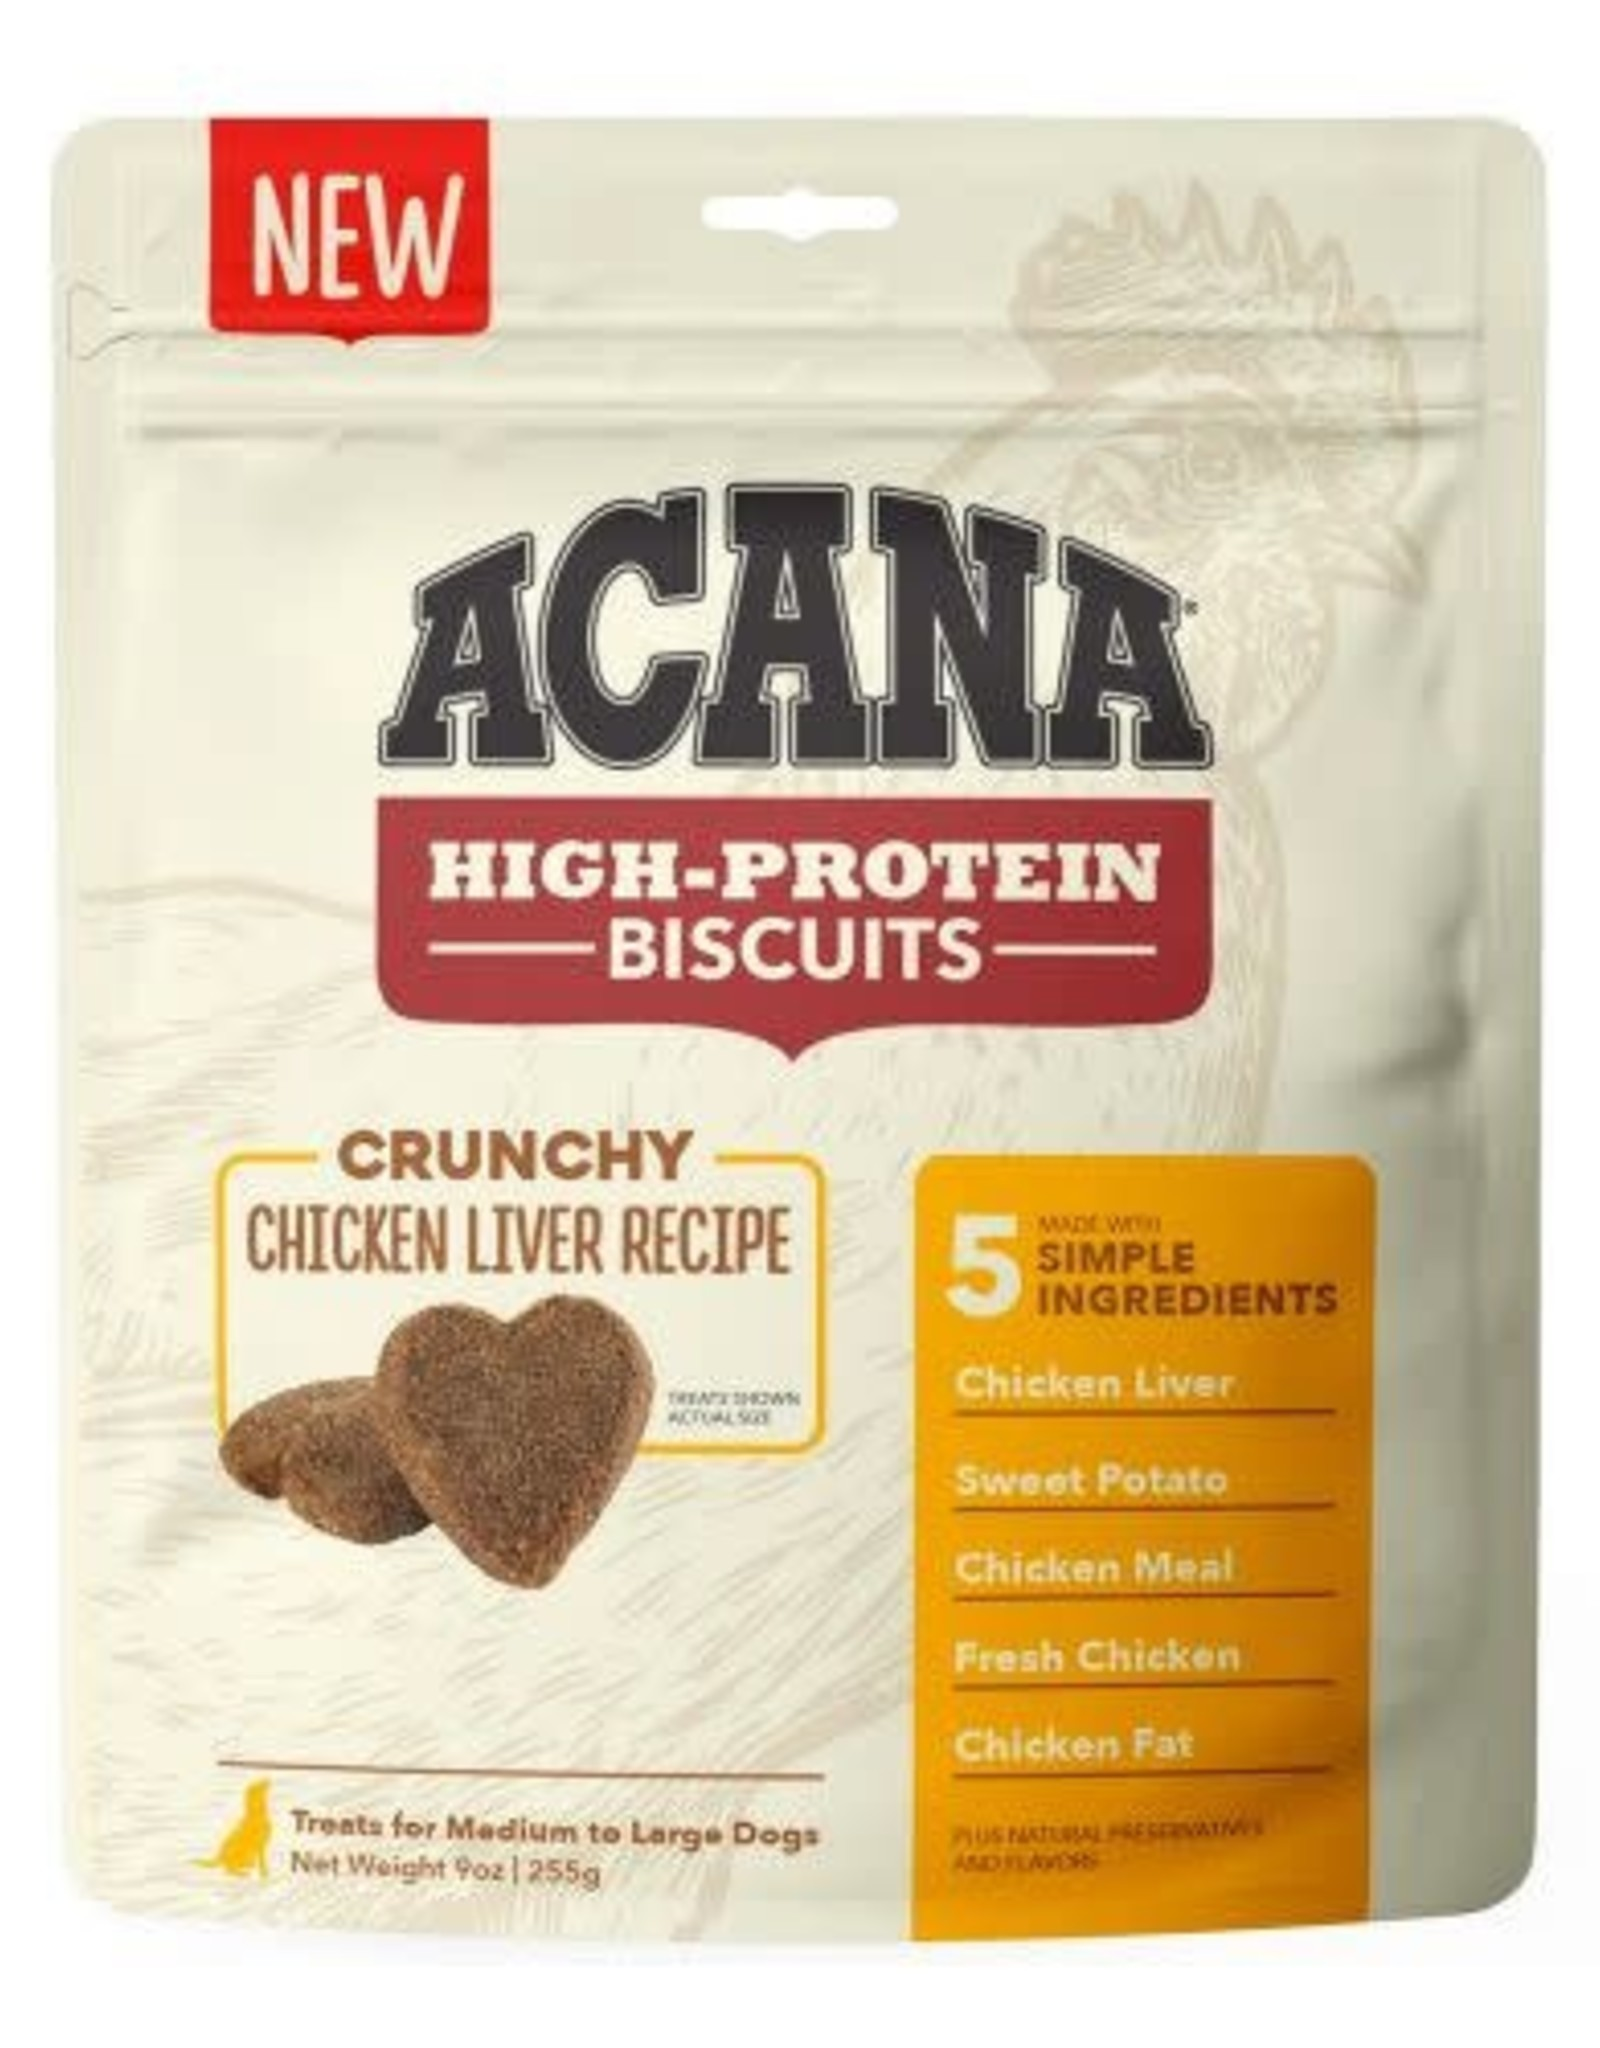 Acana Acana High-Protein Biscuits Dog Treats Chicken Liver Small 9 oz